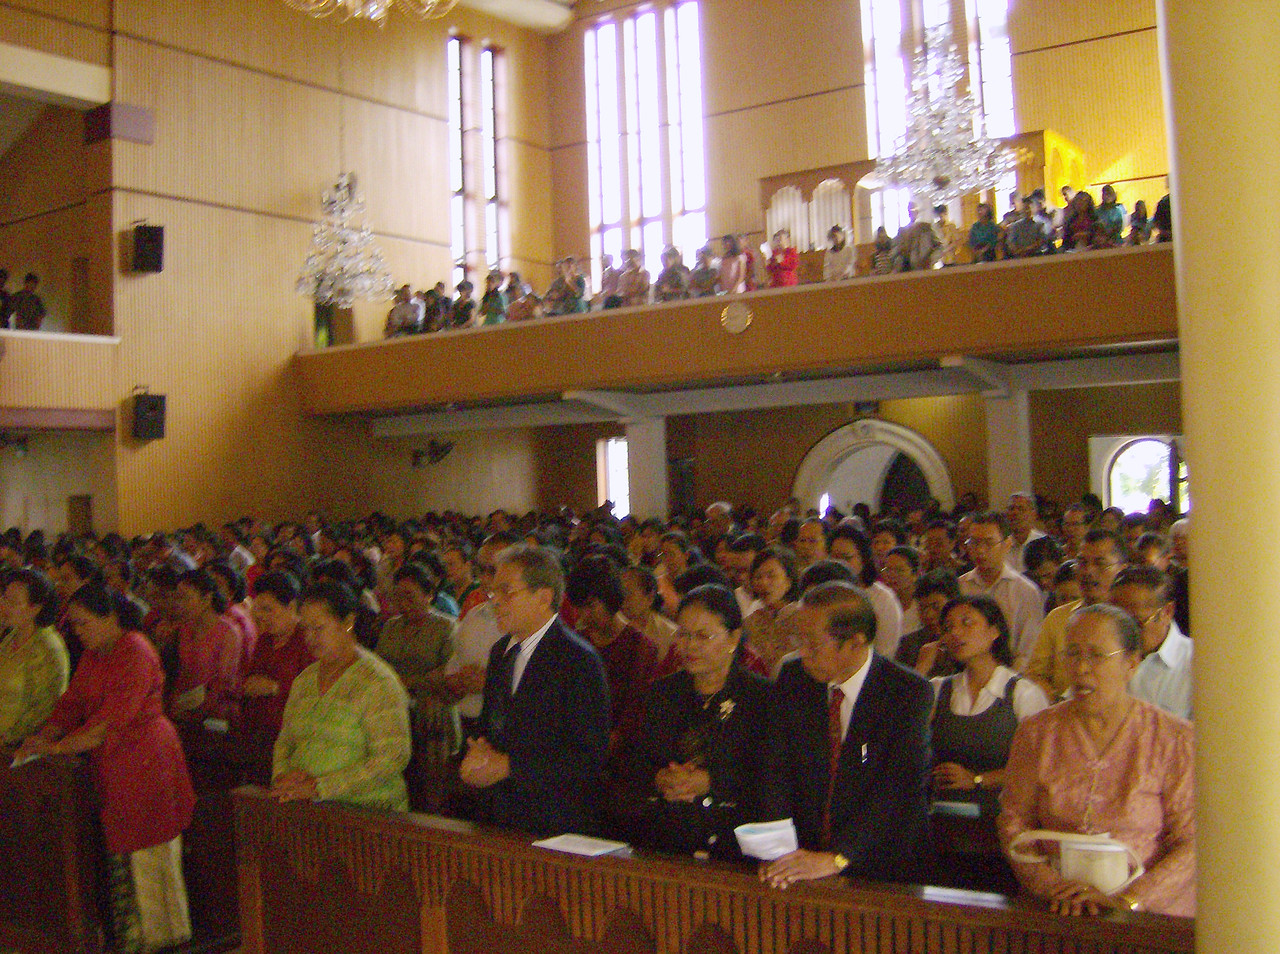 The HKBP Sudirman is the largest Lutheran congregation in Medan.  The  7:30 a.m. service July 2 drew hundreds to hear the Rev. Mark S. Hanson,  ELCA presiding bishop and LWF president.